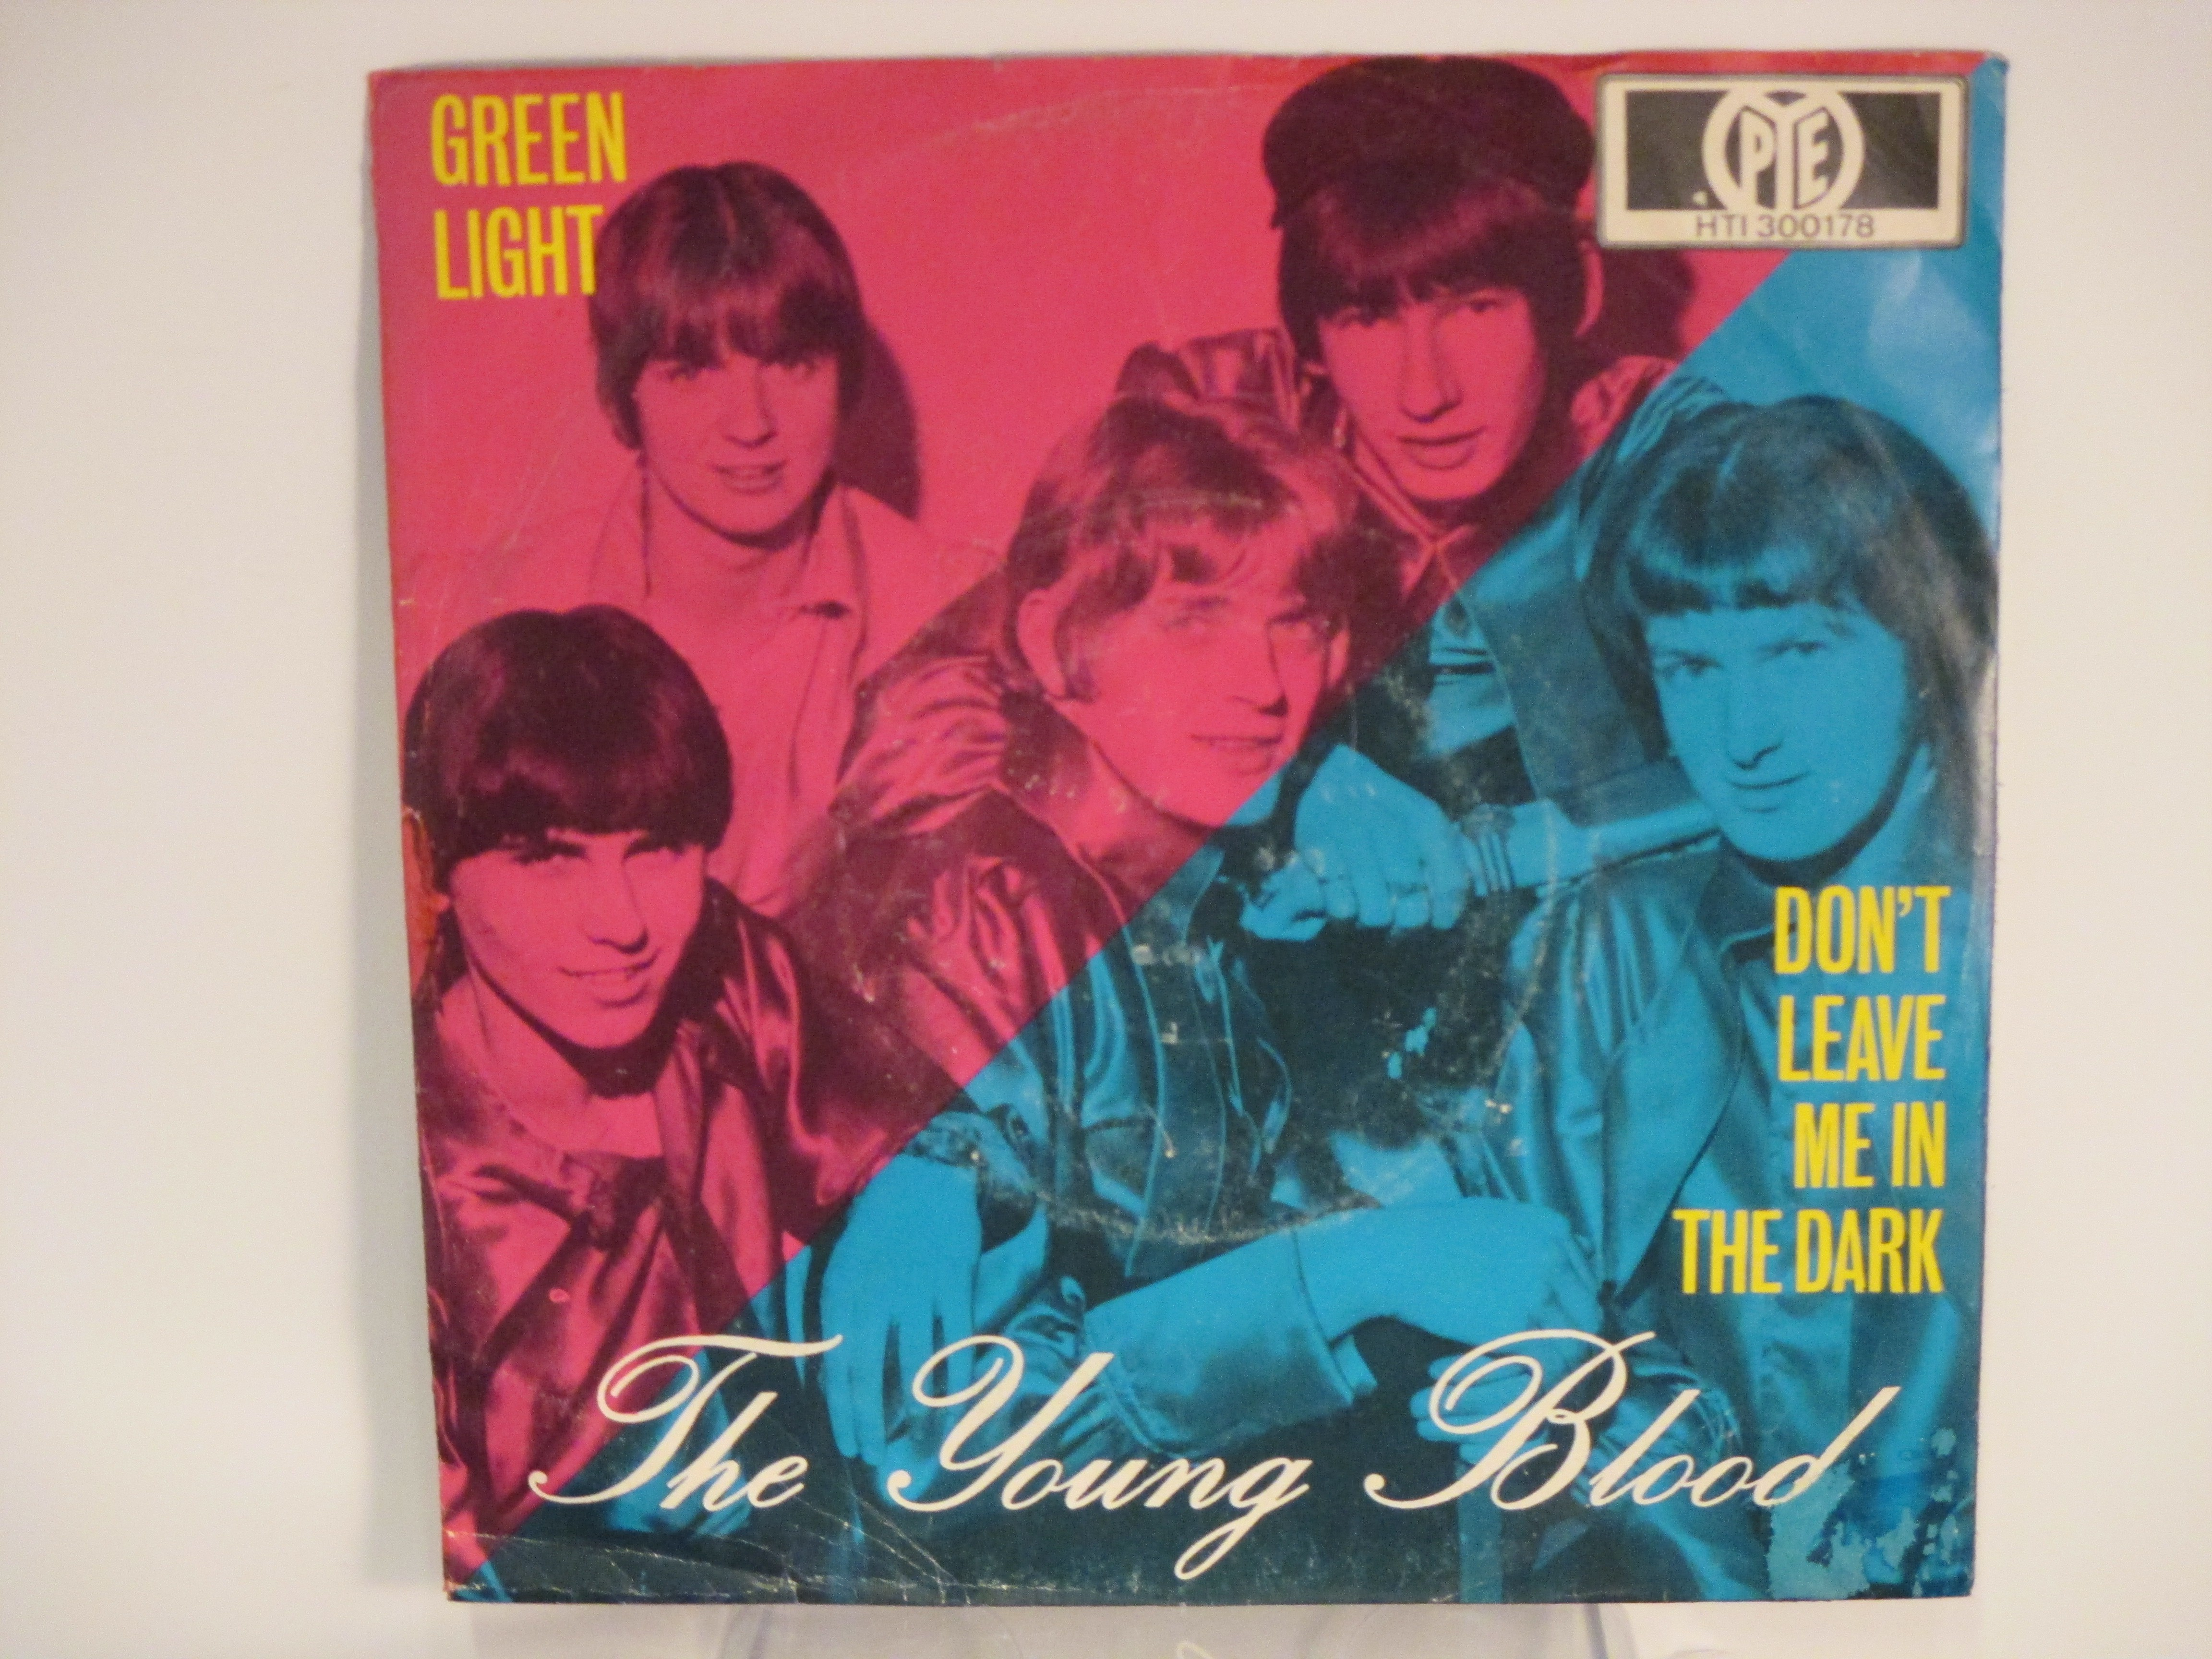 YOUNG BLOOD (with COZY POWELL) : Green light / Don't leave me in the dark